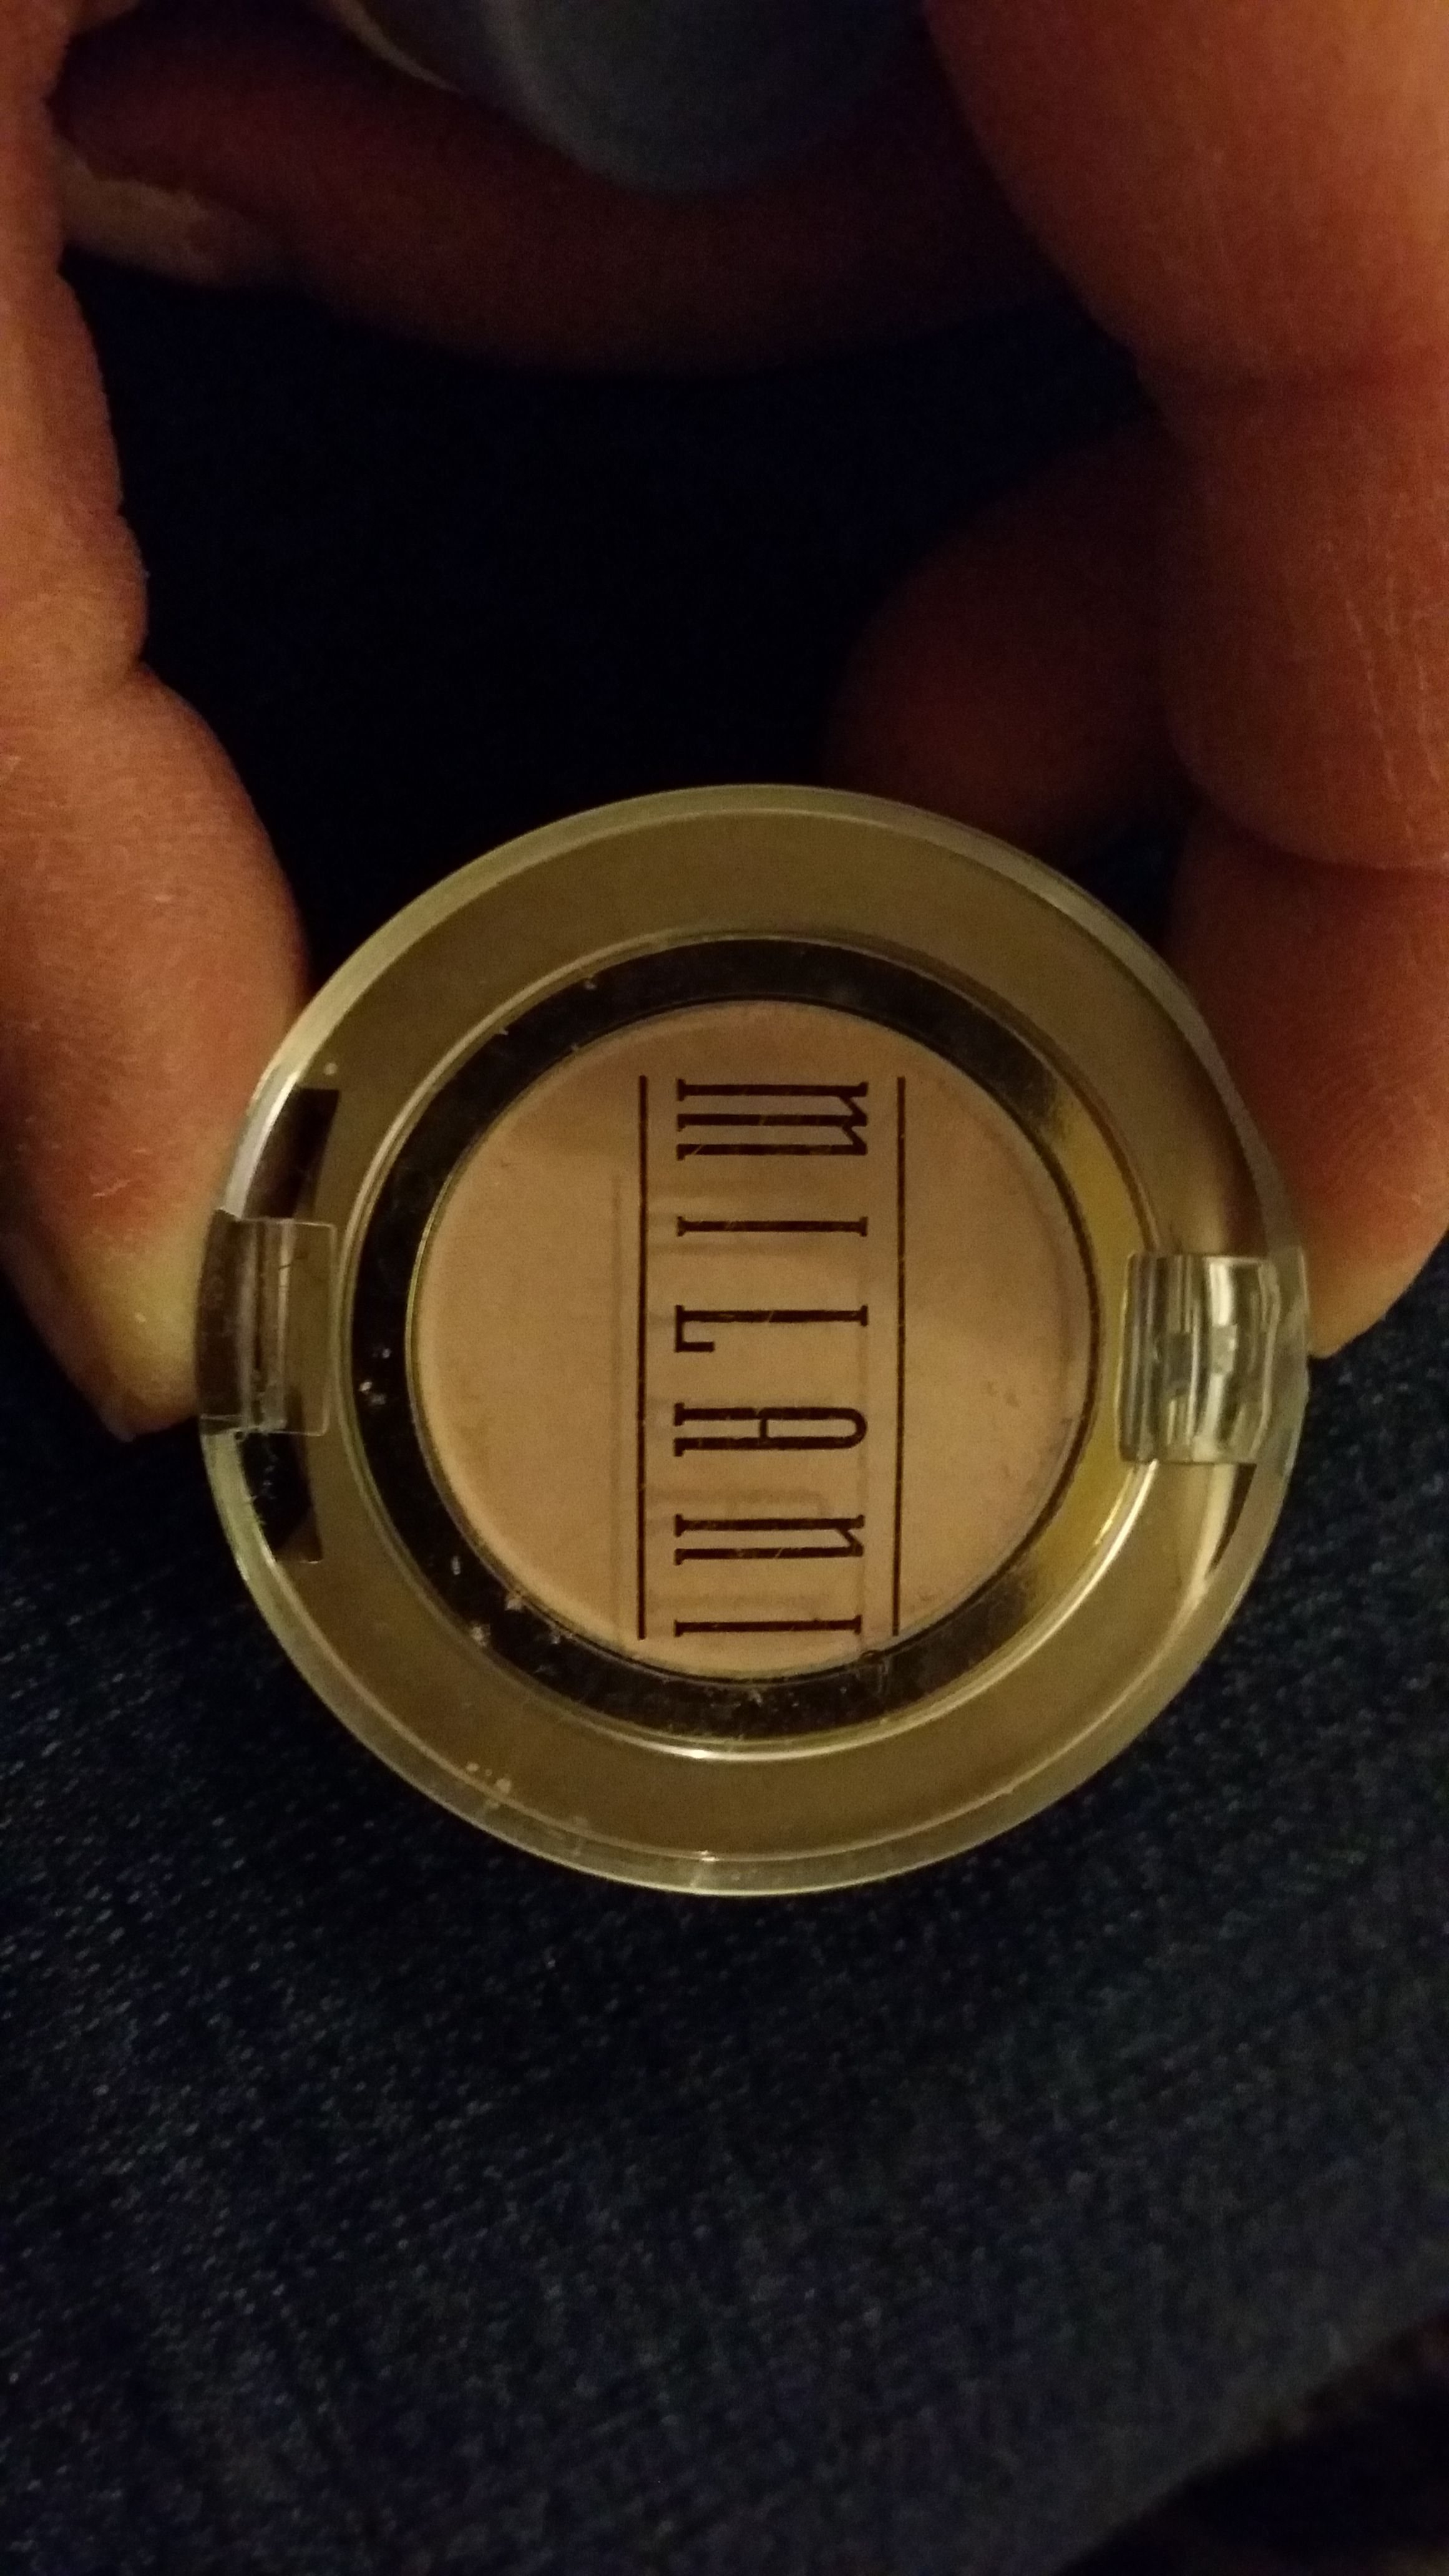 I just got this, swatched it once and it's not for me :-(